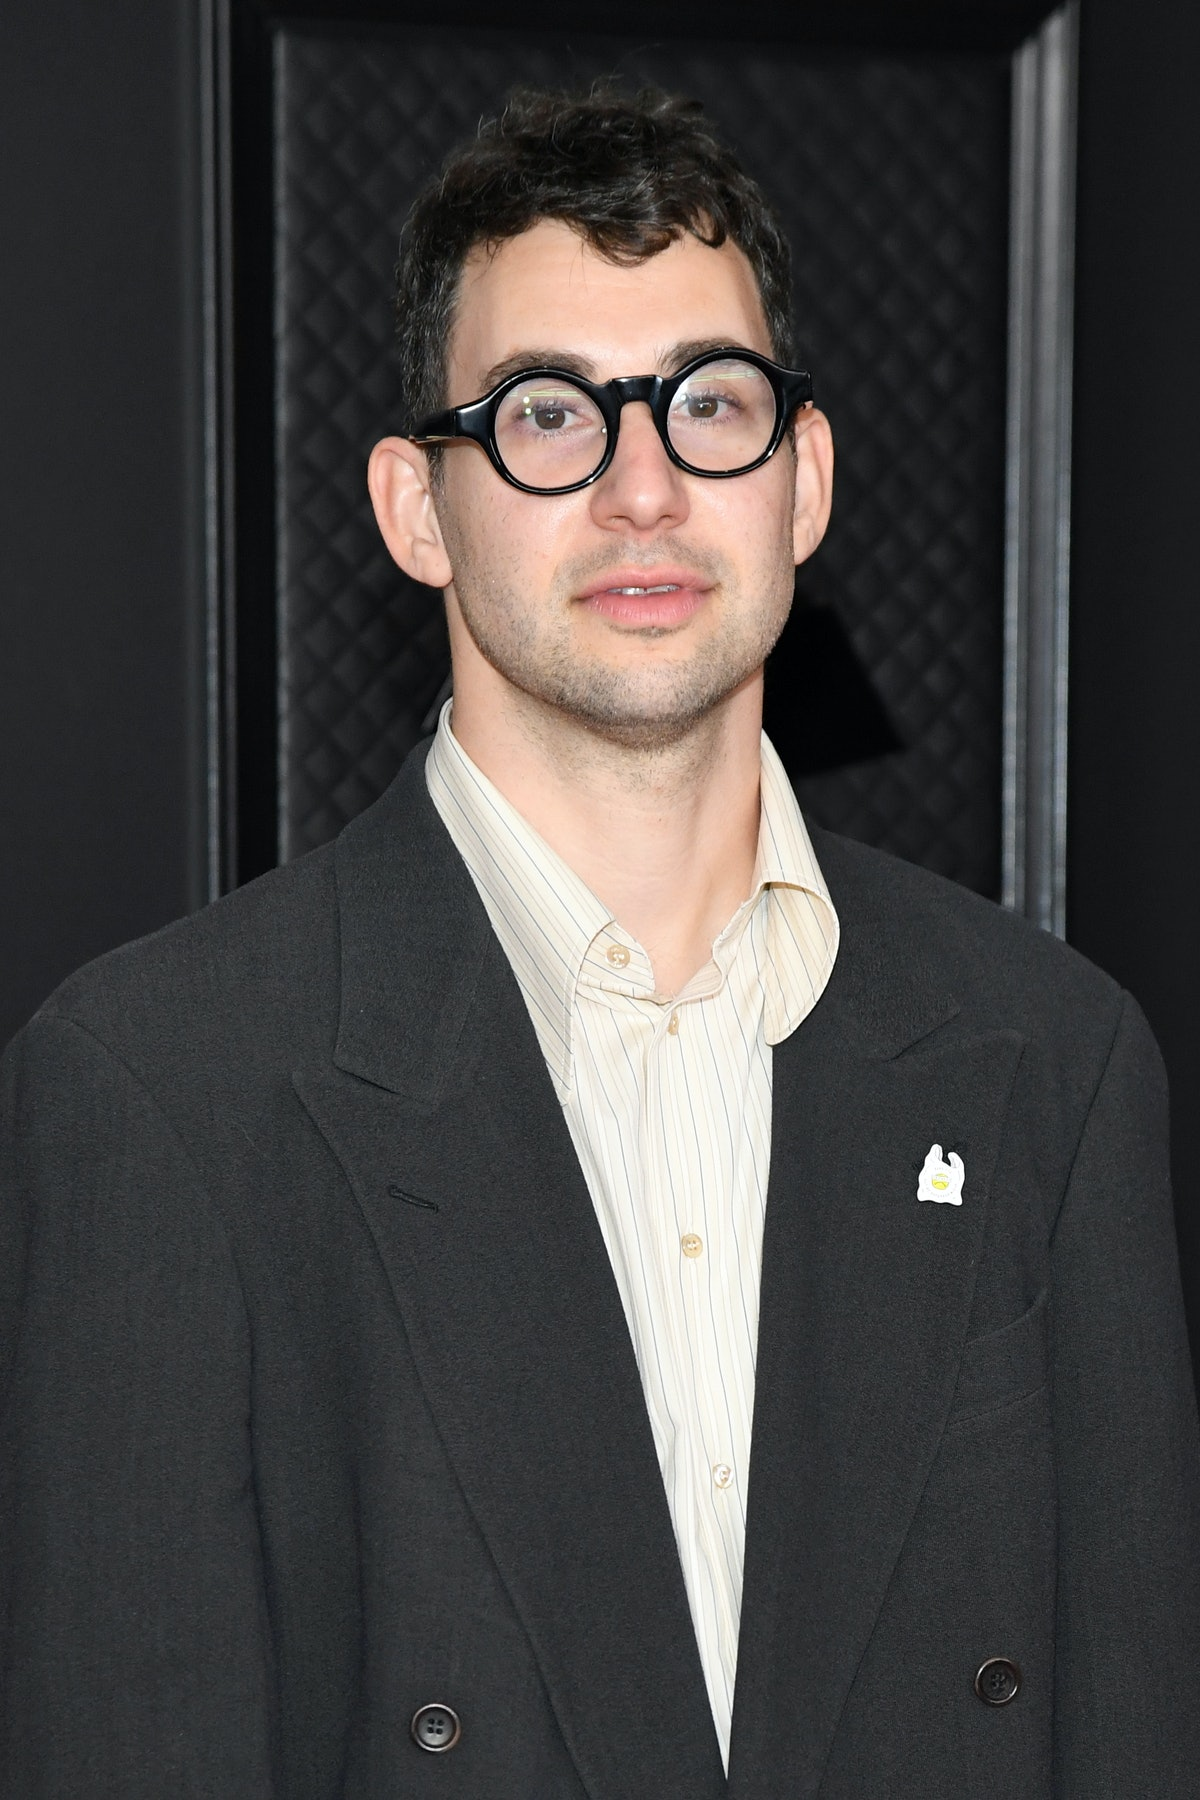 LOS ANGELES, CALIFORNIA - MARCH 14: Jack Antonoff attends the 63rd Annual GRAMMY Awards at Los Angel...